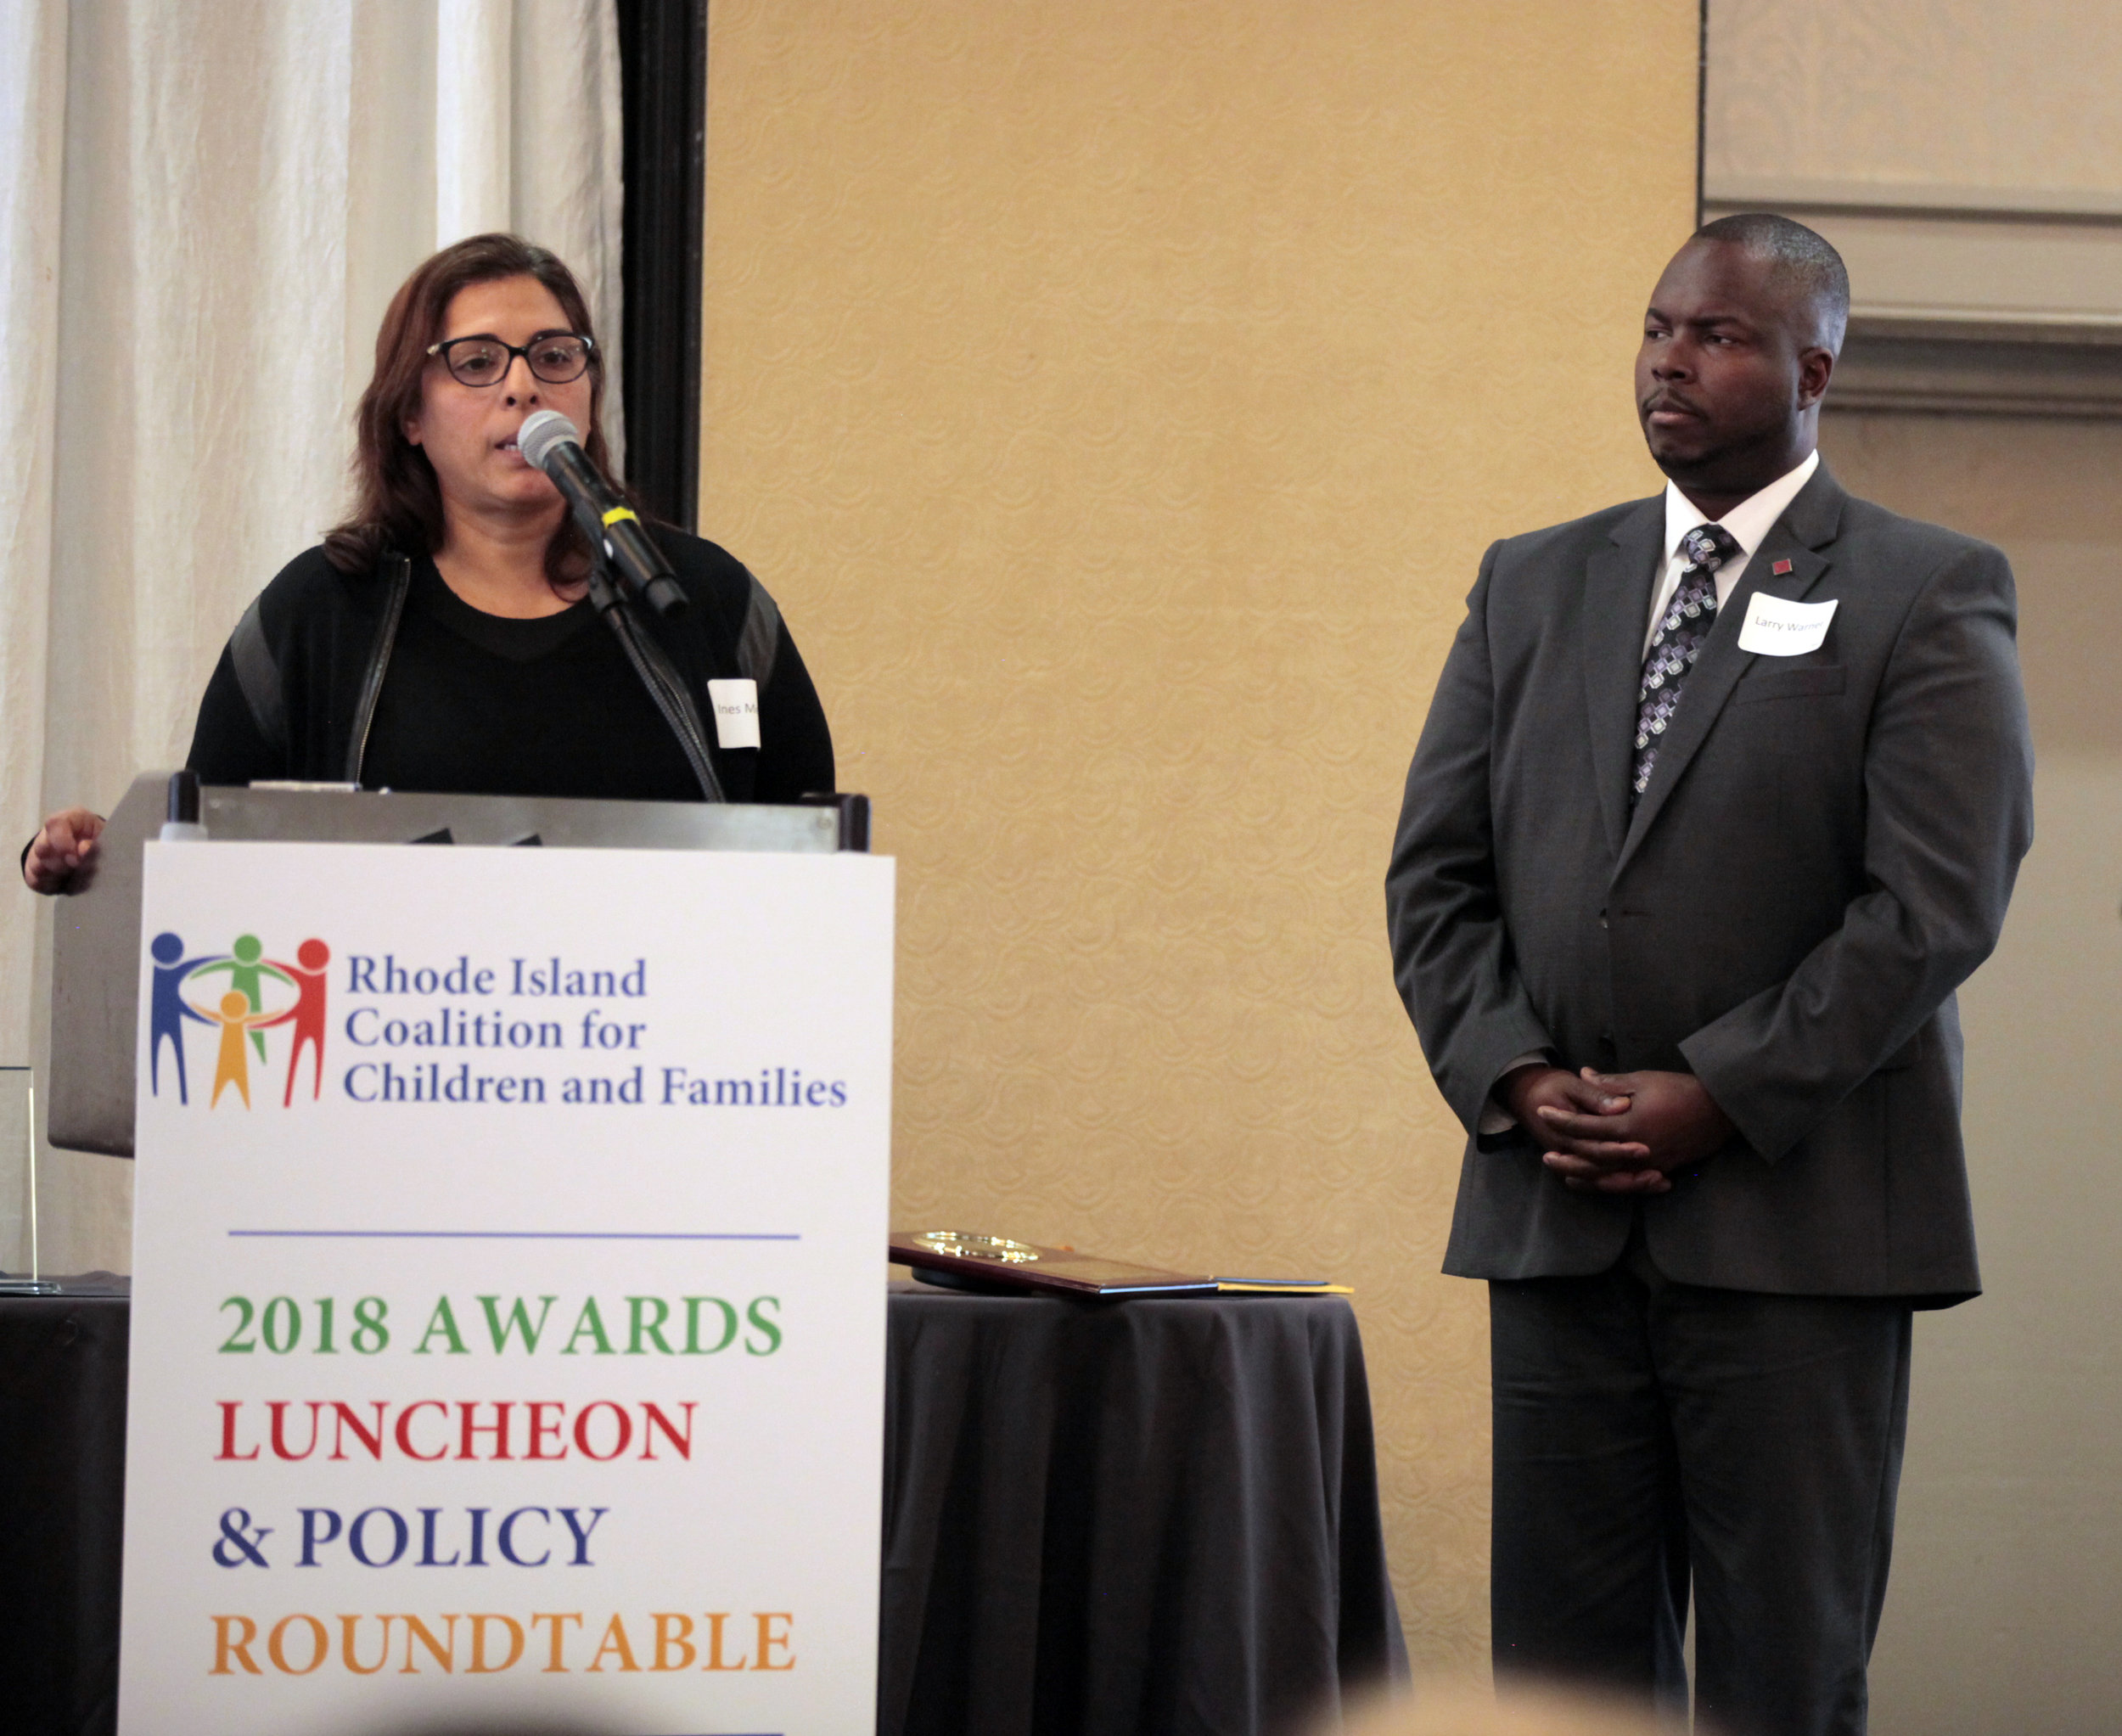 Inés Merchan  and  Larry Warner  of the RI Foundation accepting the Coalition Building award on behalf of  Neil D. Steinberg,  President & CEO.